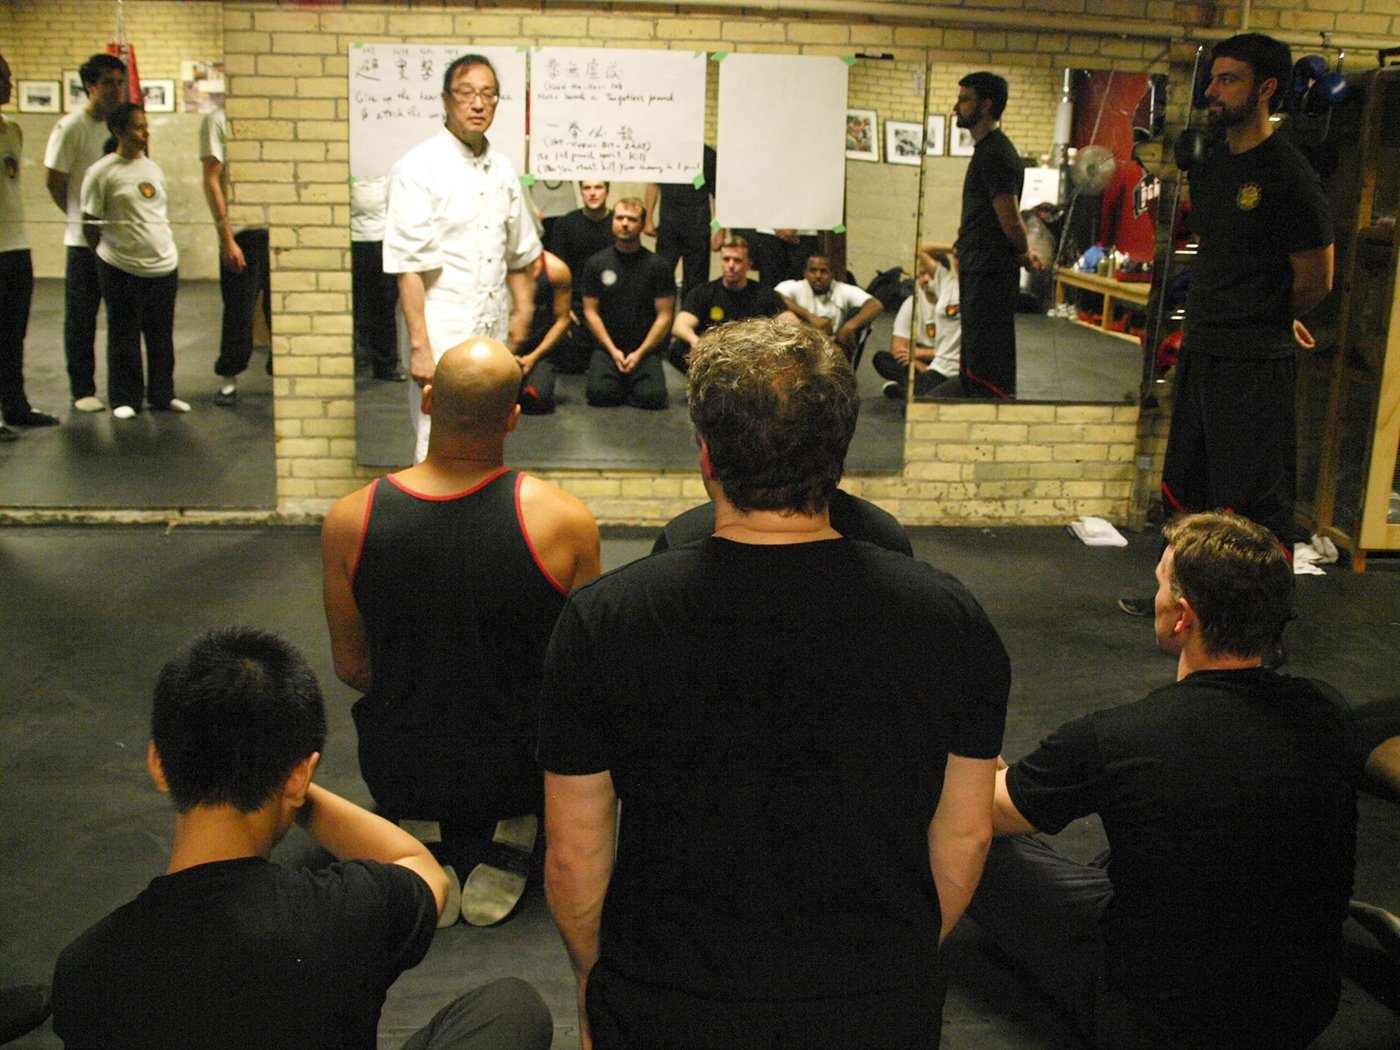 Photo: Great Grandmaster Leung Ting explaining concepts of Leung Ting WingTsun® in Toronto, Canada